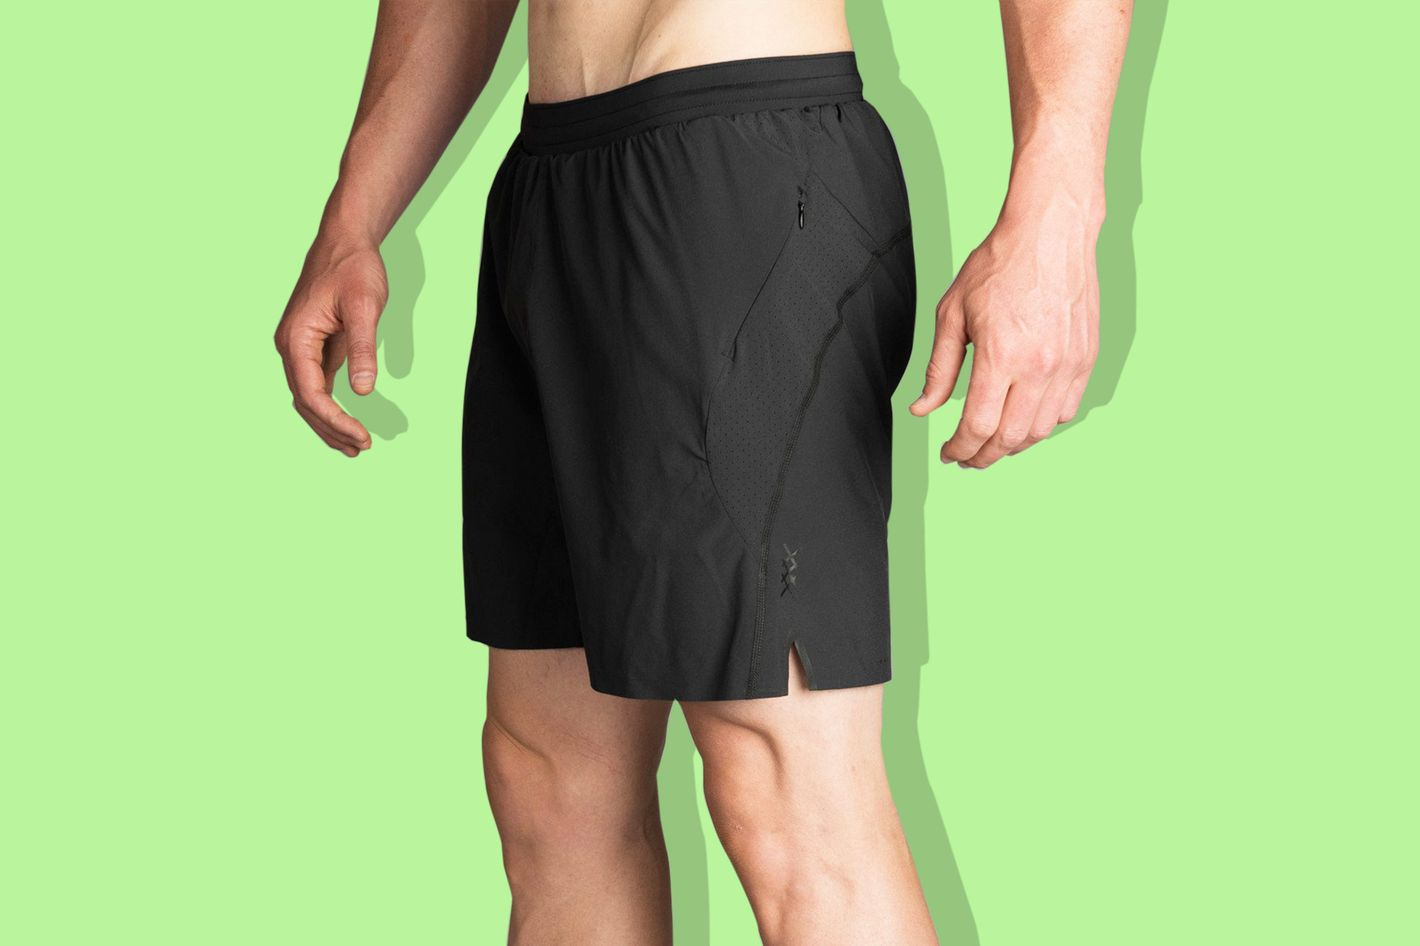 "rhone lined 7"" running shorts in black - strategist best fitness gear and best running shorts for men"